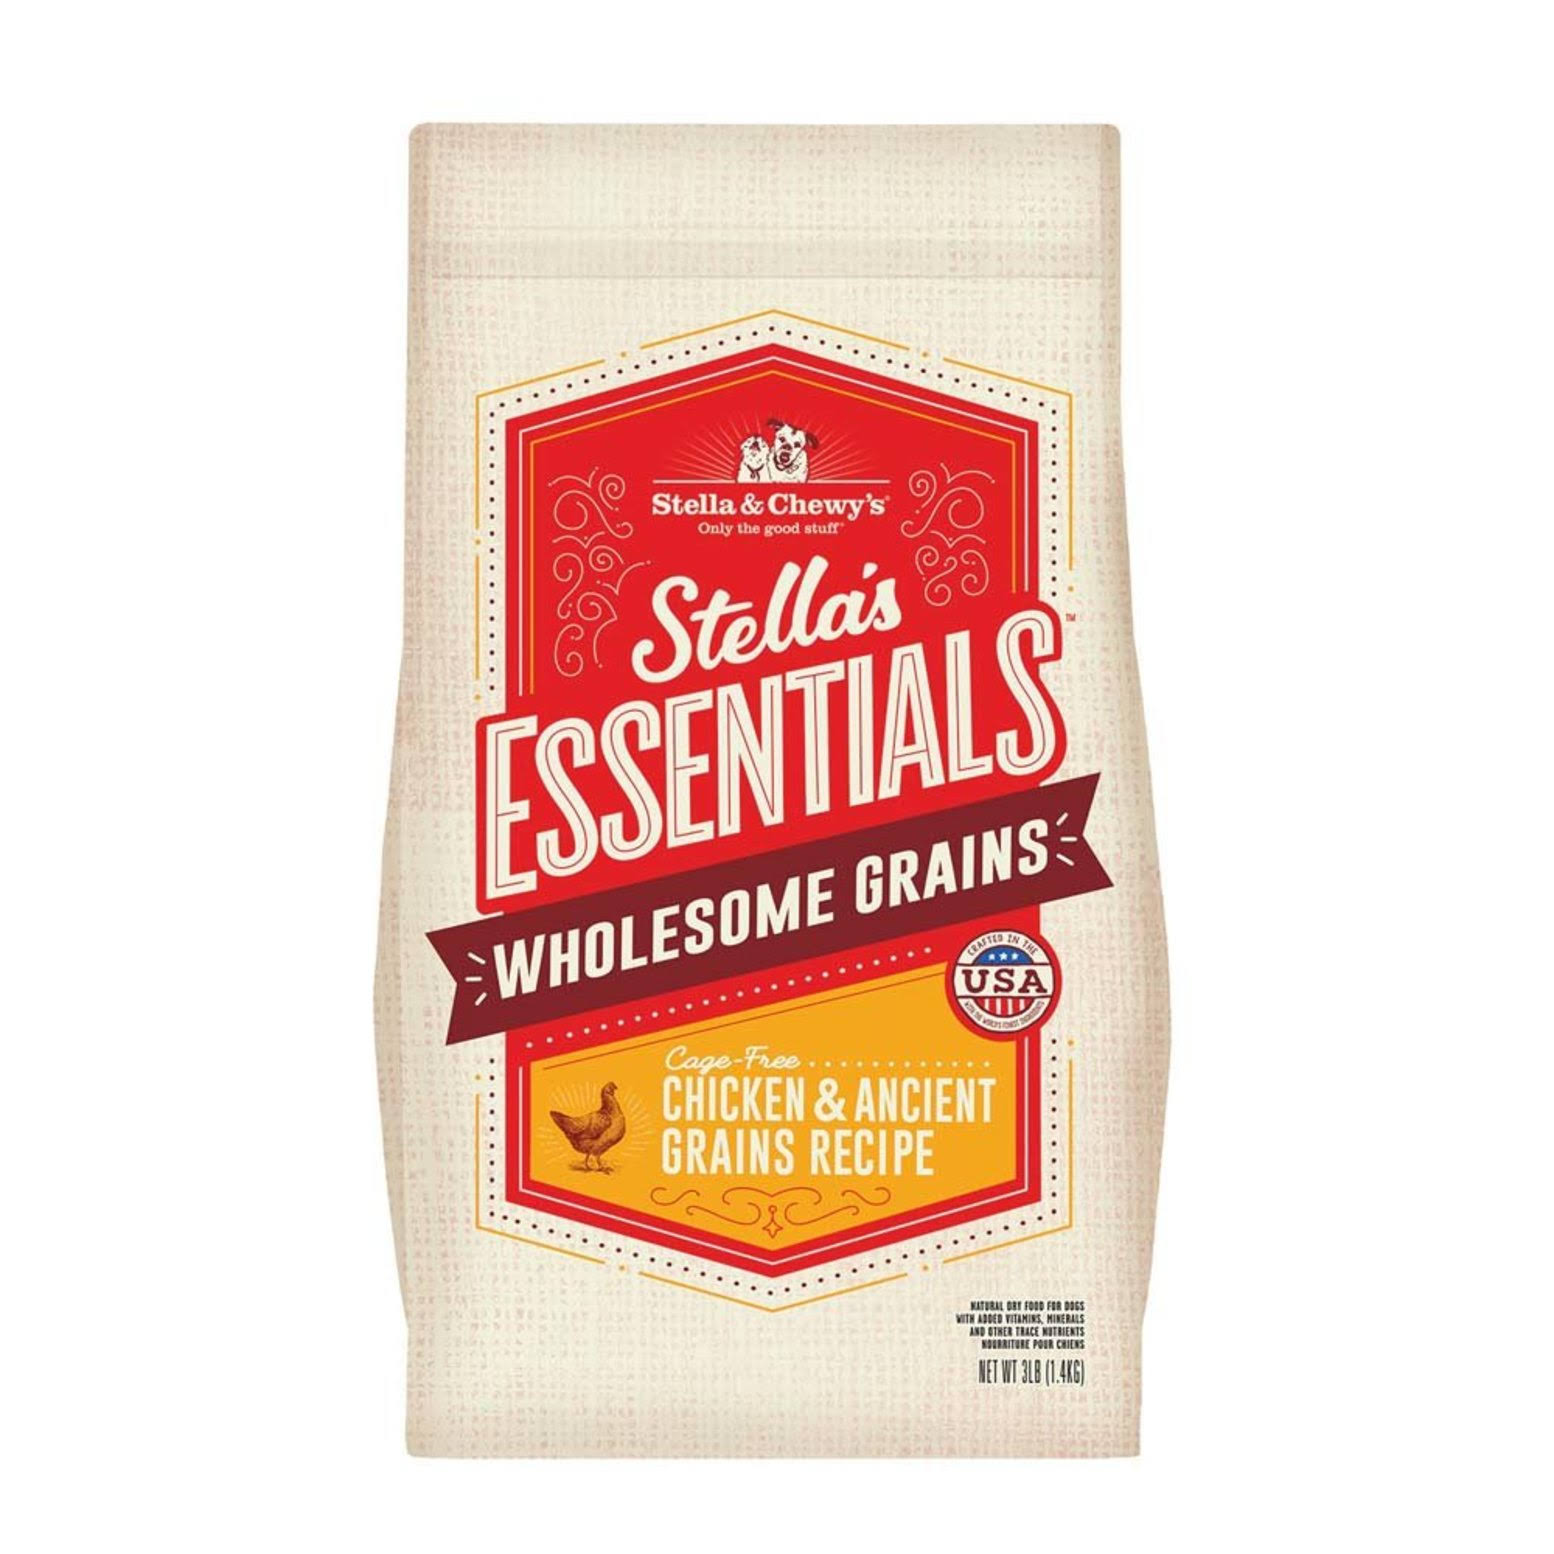 Stella & Chewy's Essentials Kibble Cage-Free Chicken & Ancient Grains Dog Food - 3 lbs.